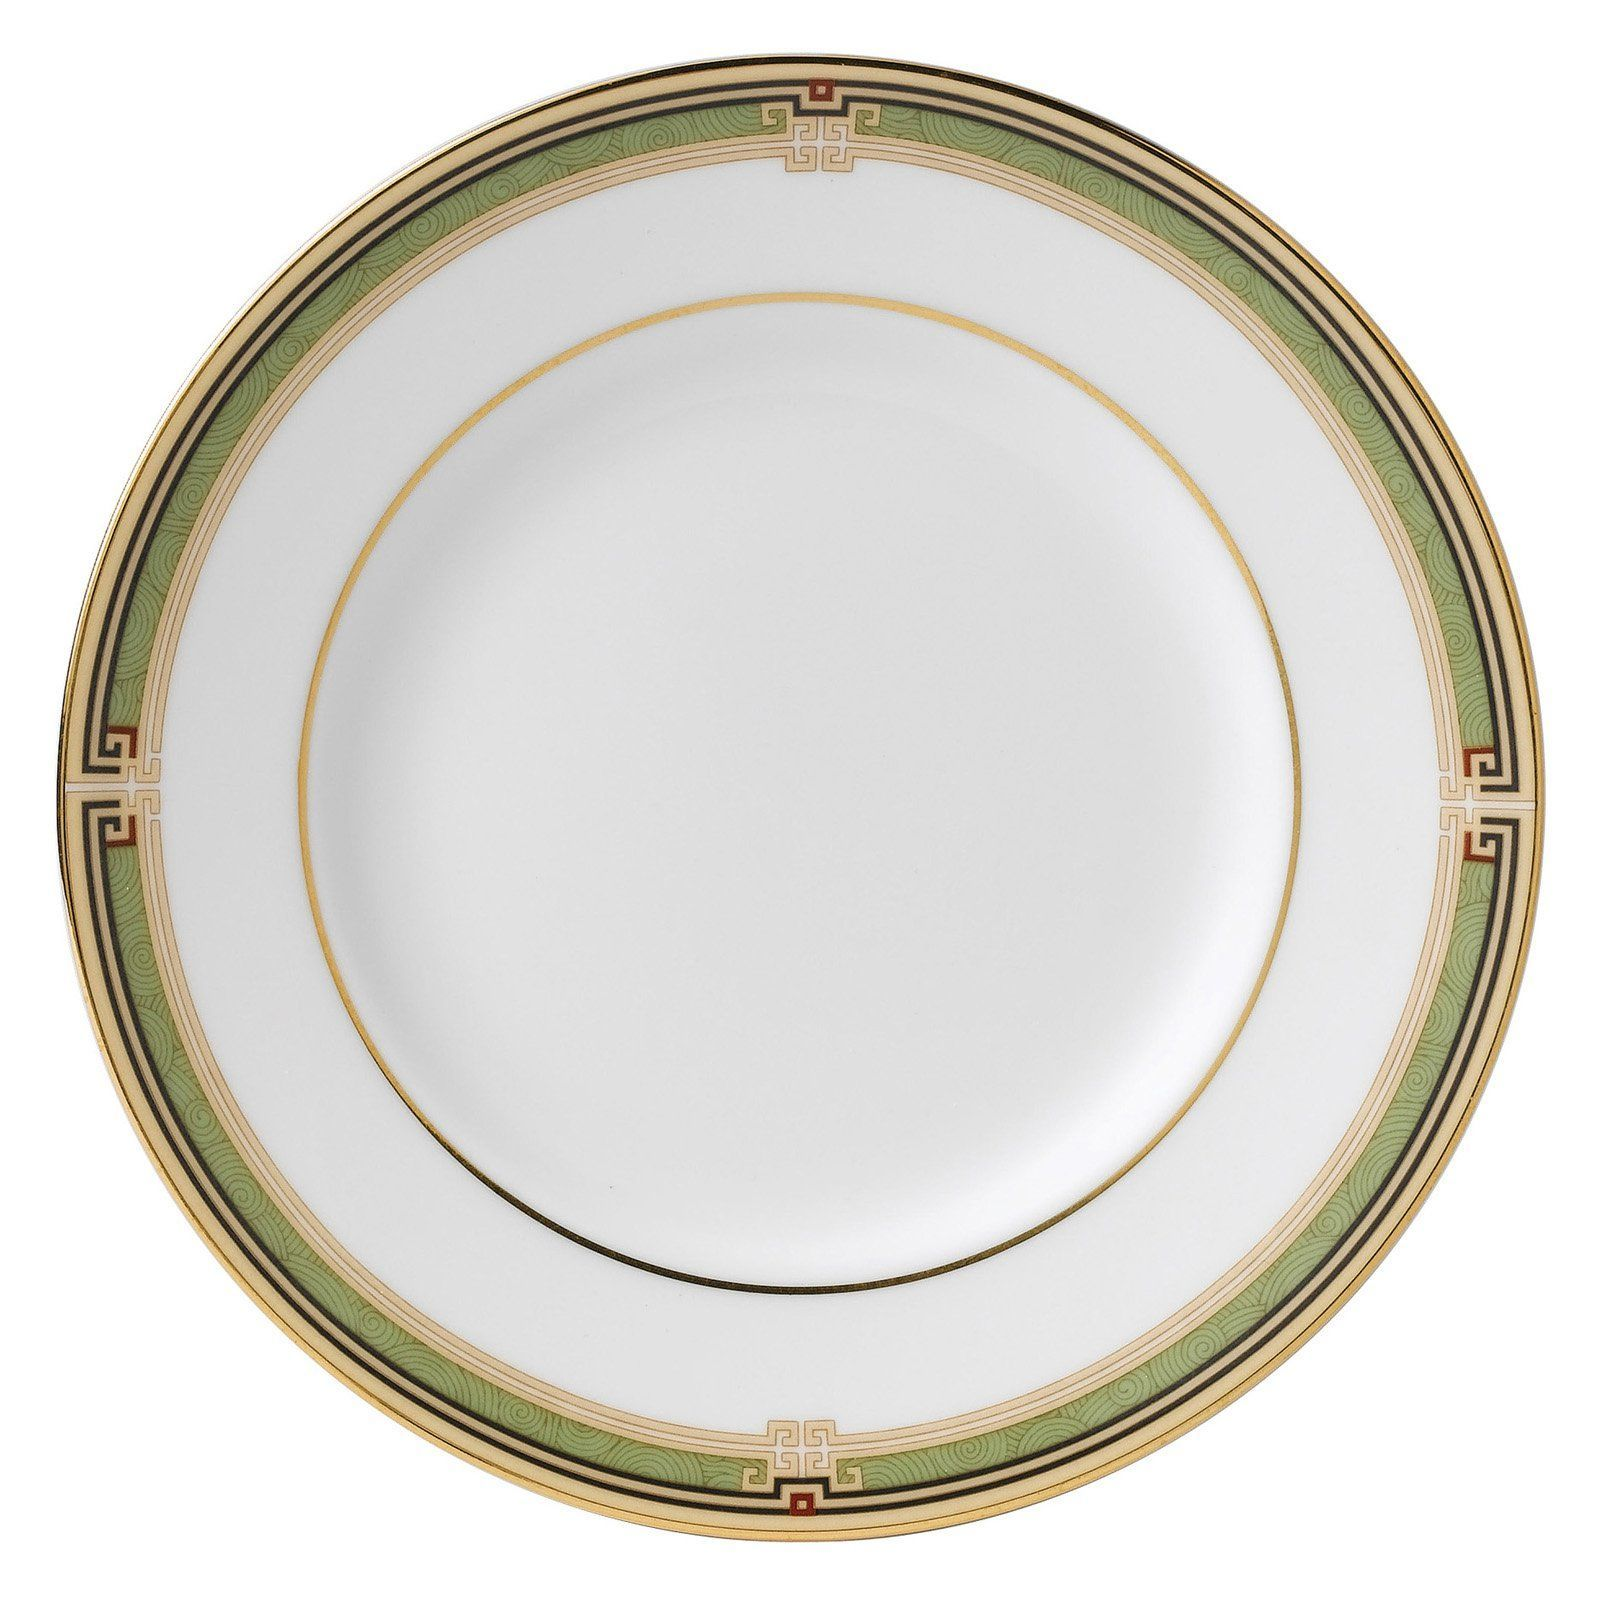 Wedgwood Oberon Bread and Butter Plate - 50116601008